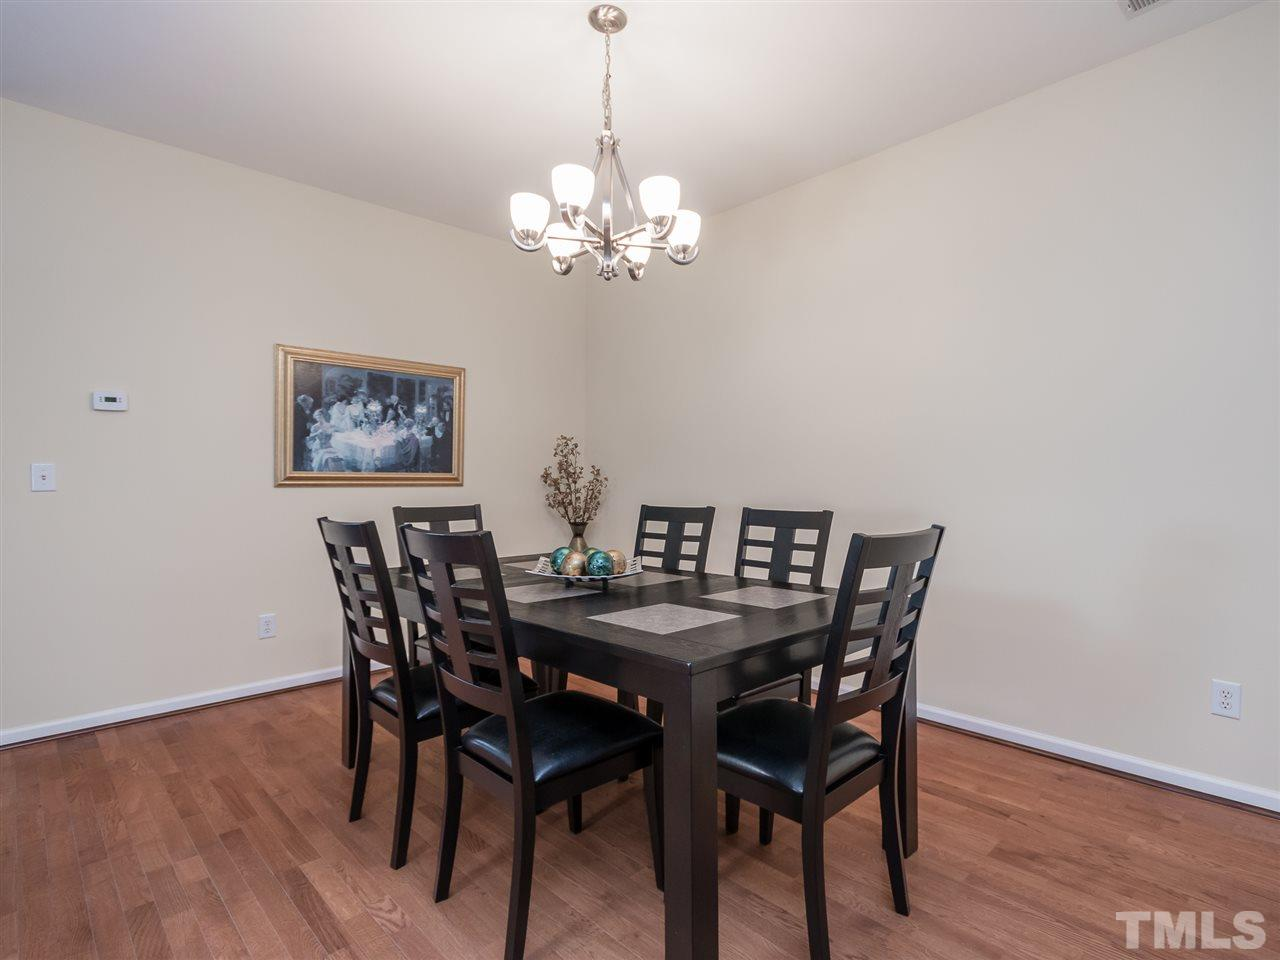 This space is perfect for large family and friend gatherings!